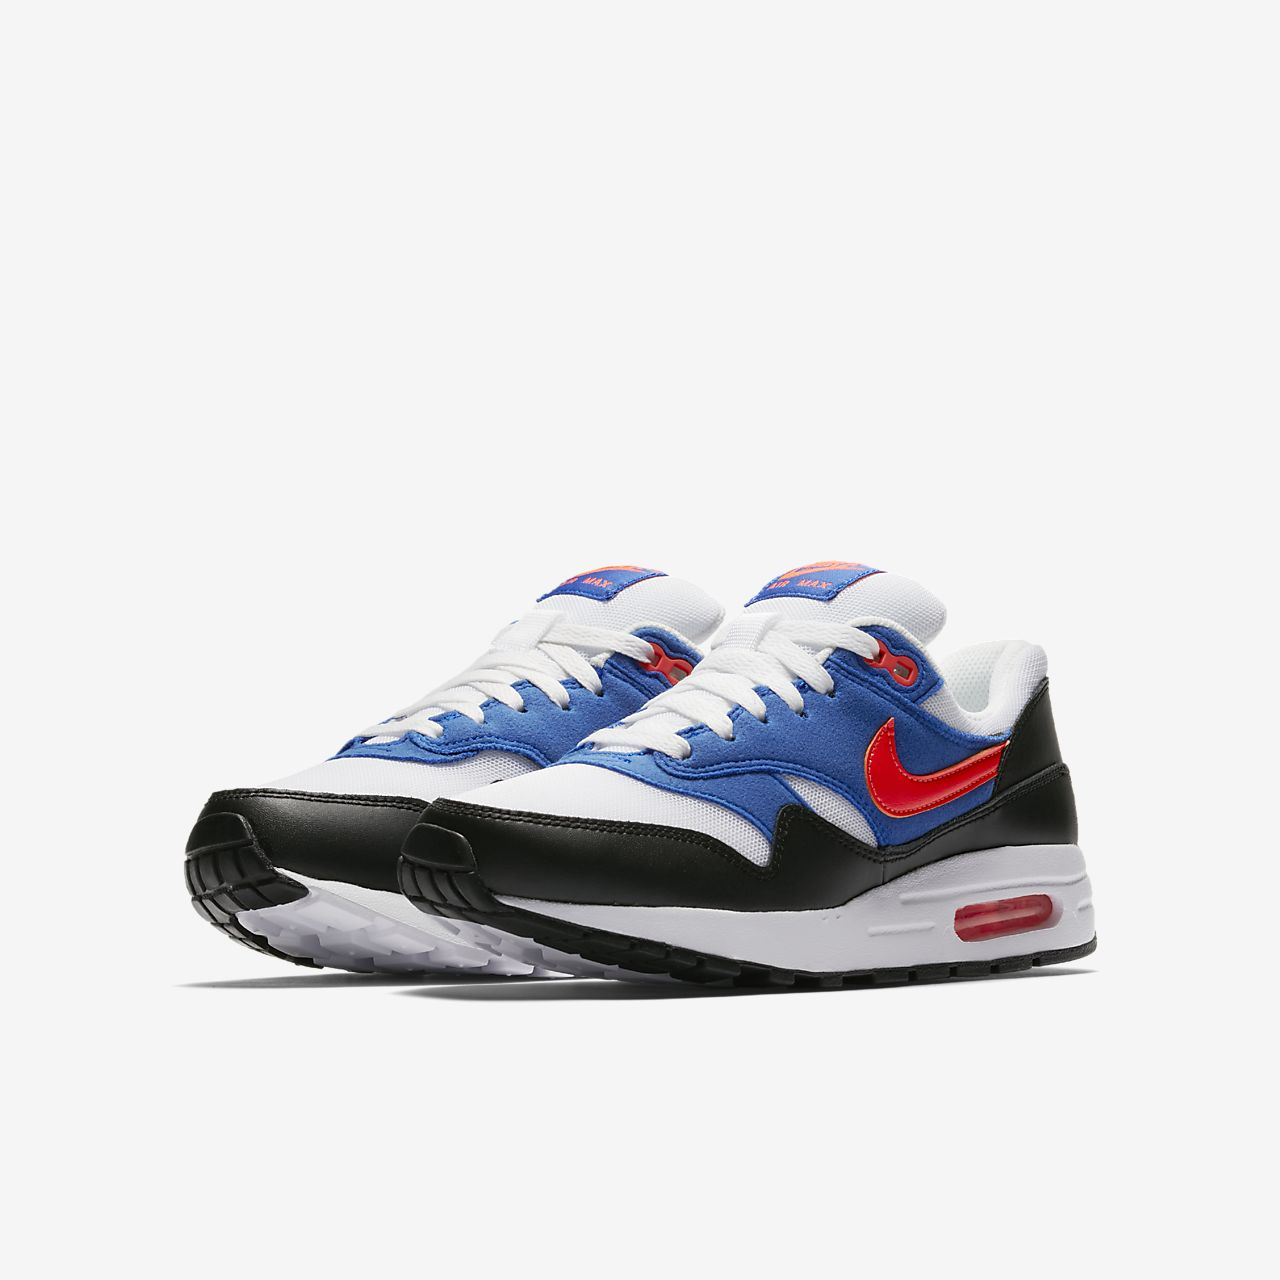 nike air max 1 blue og nz